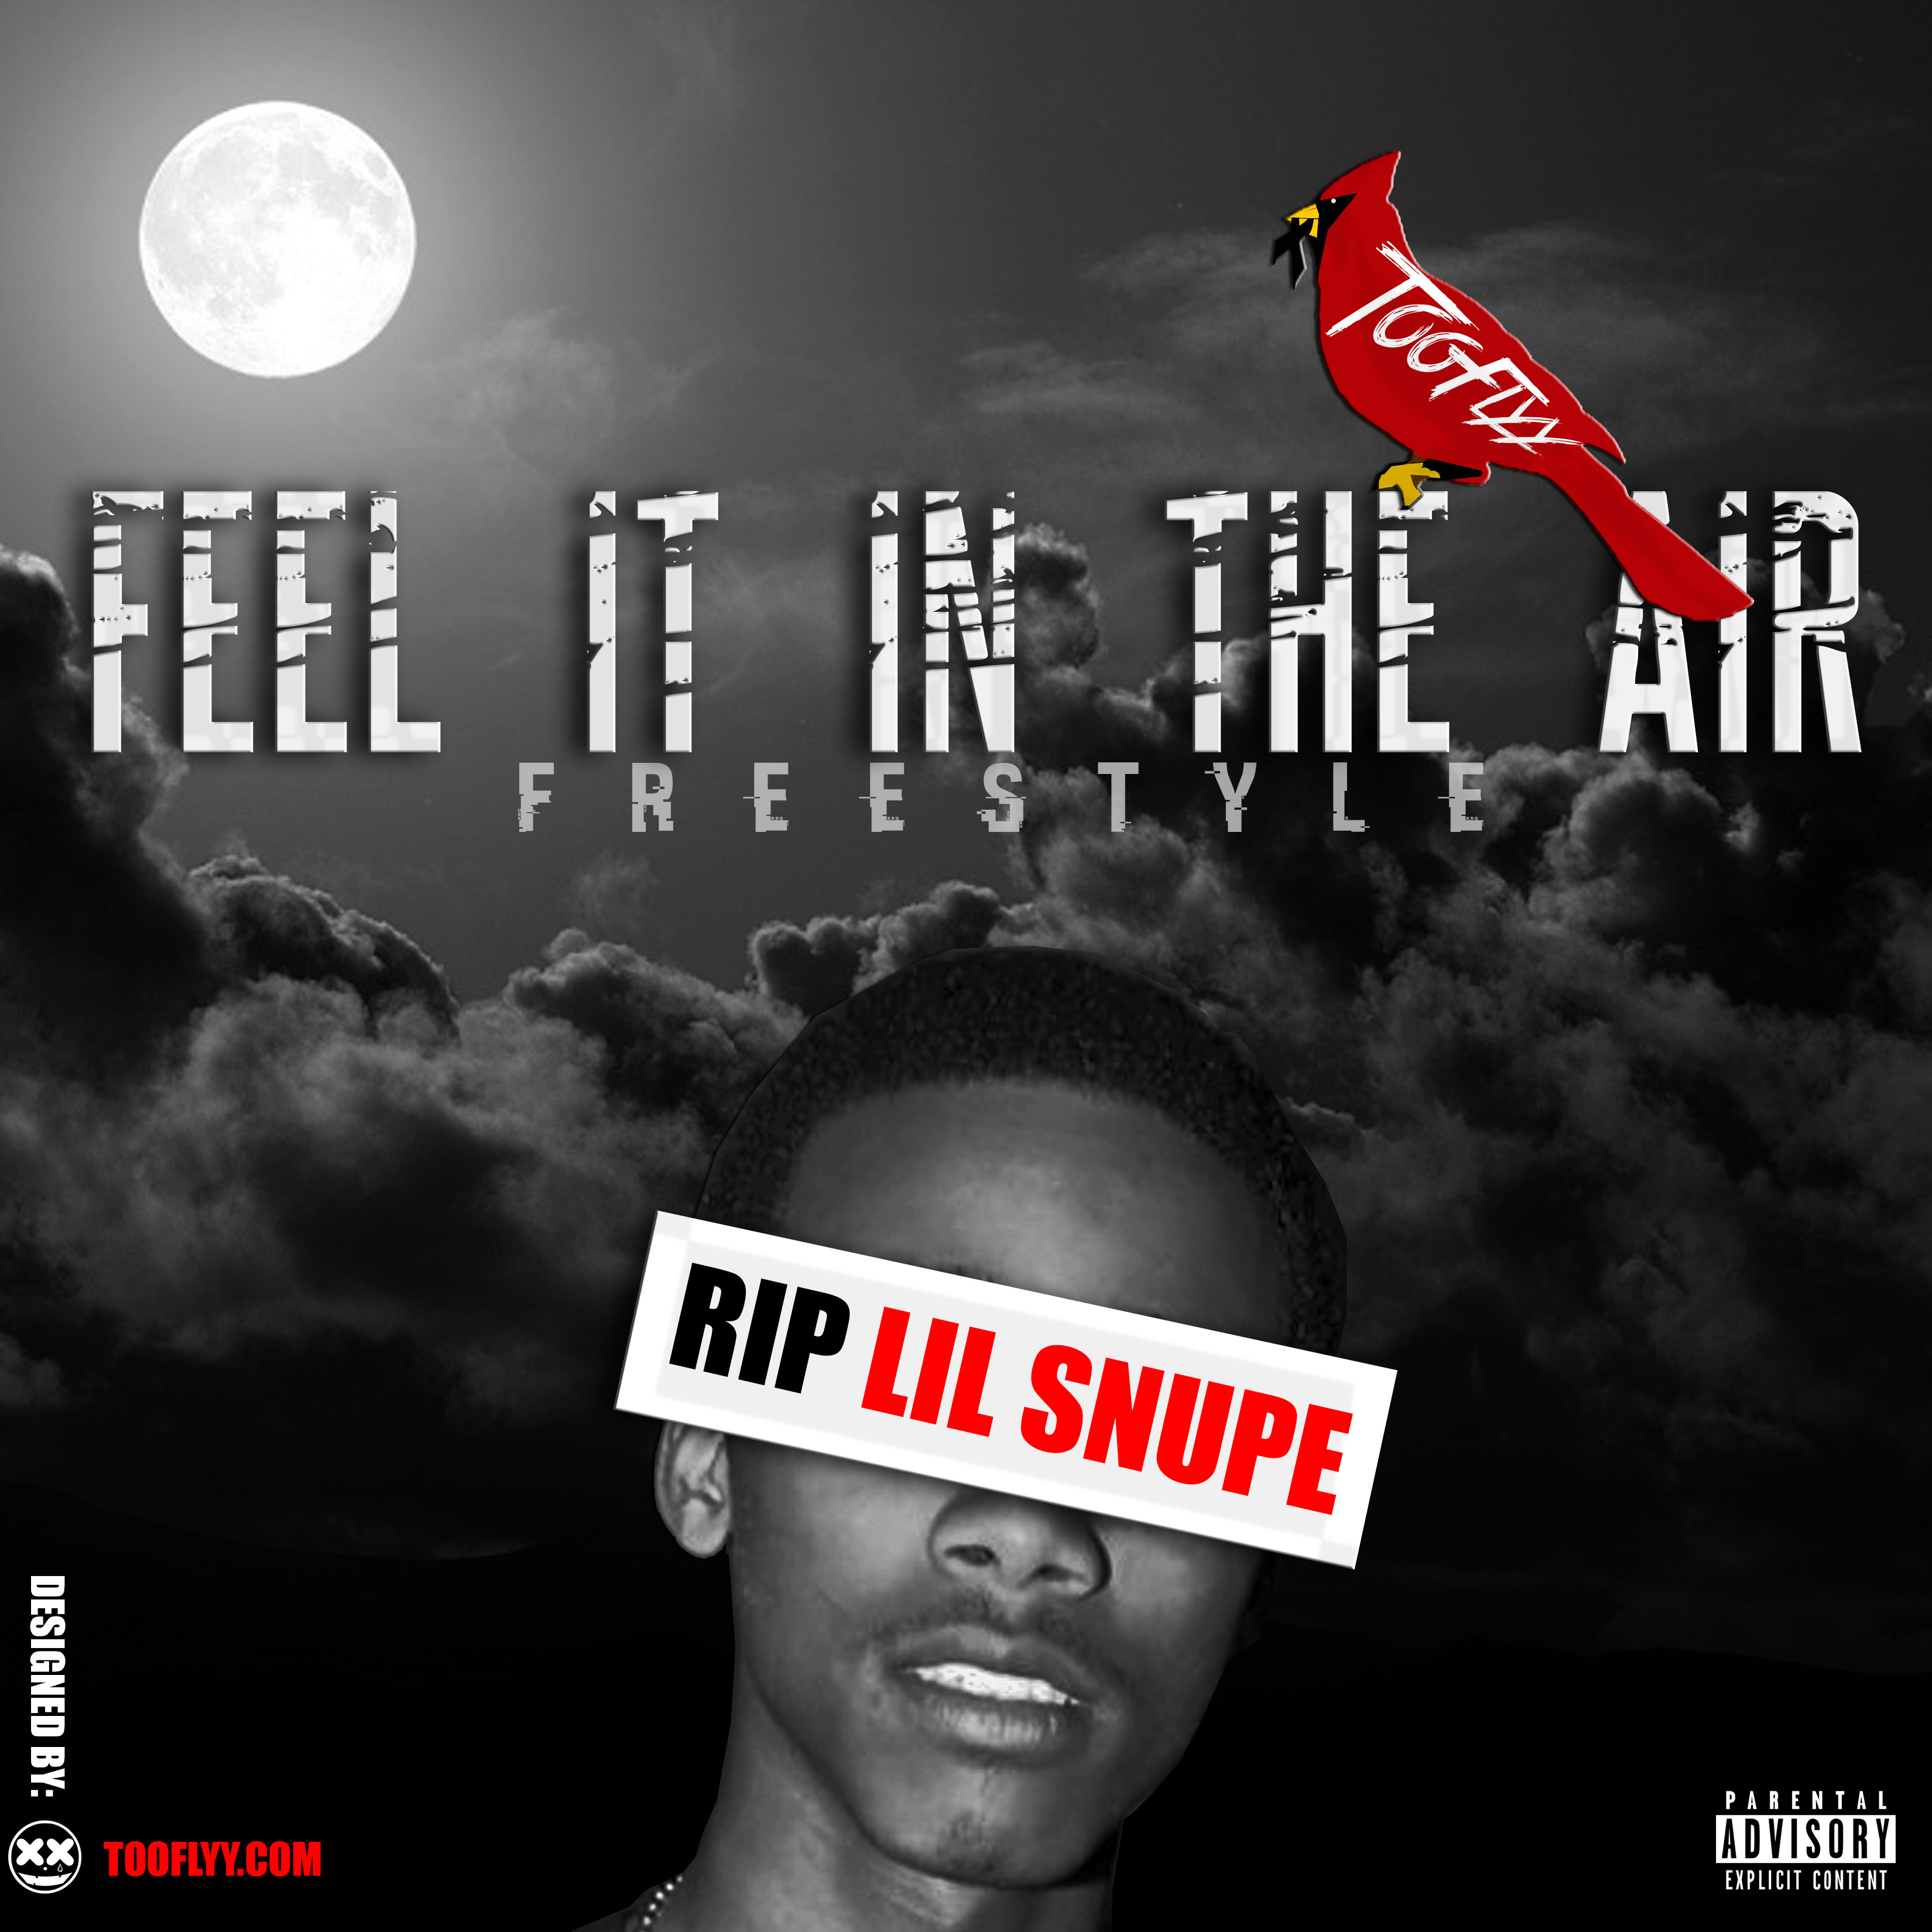 TOO FLYY - RIP SNUPE.jpg